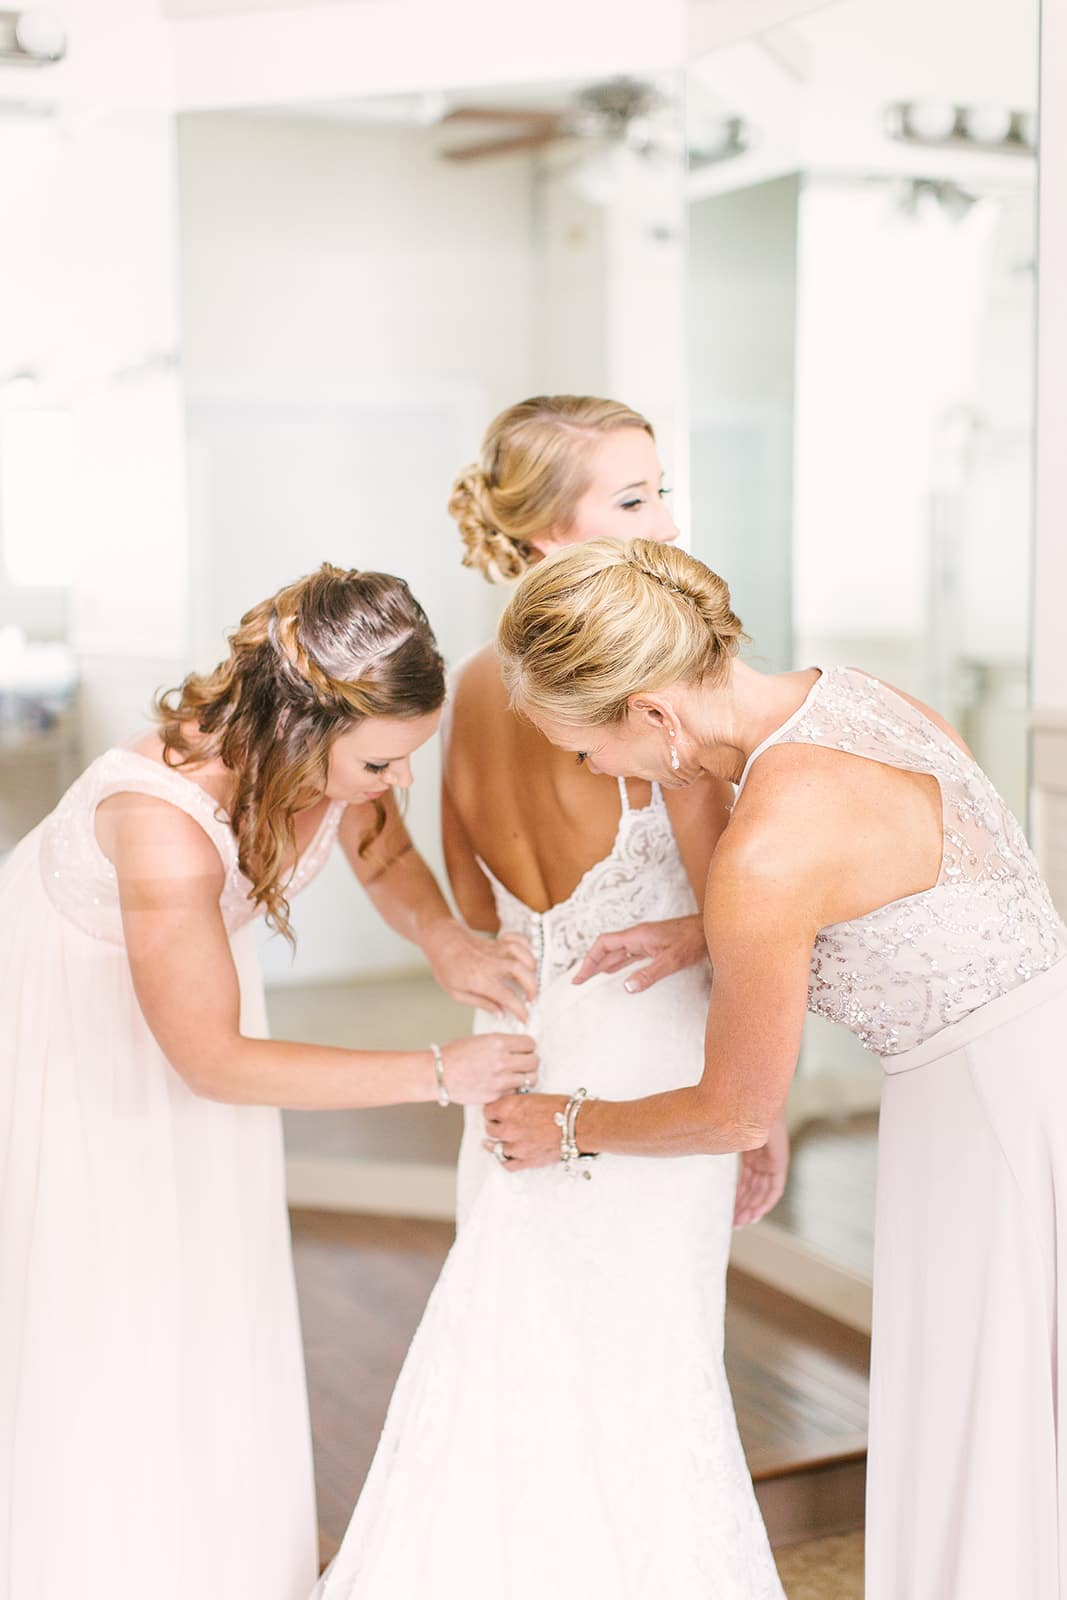 Bride gets dressed in her beautiful gown before her wedding at The Diary Barn which was coordinated by Magnificent Moments Weddings